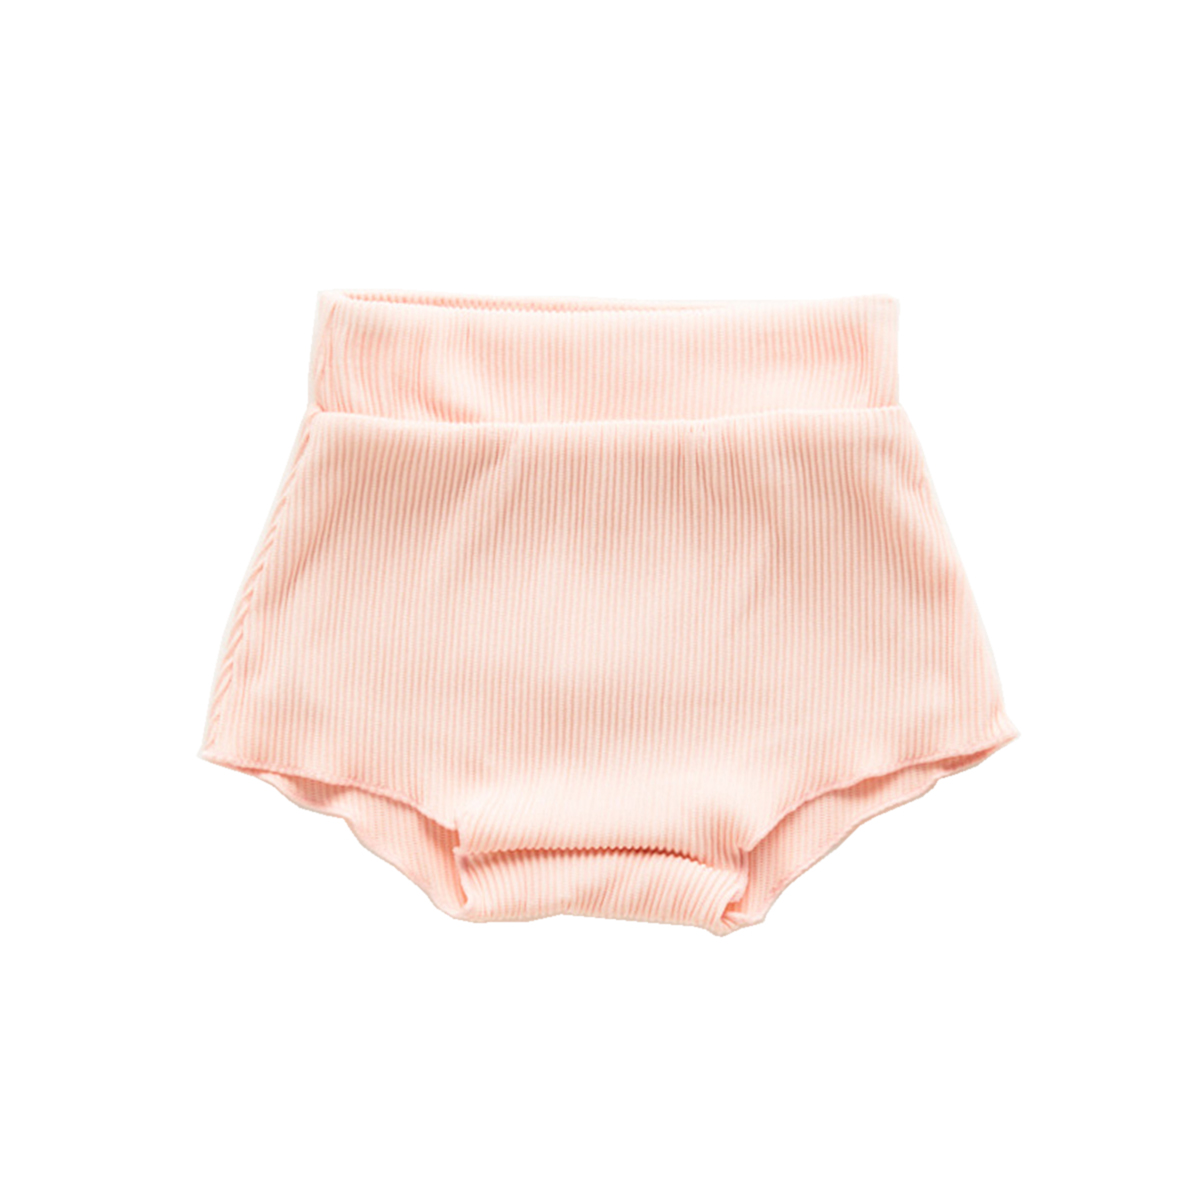 Zulu and Zephyr Mini Mermaid Edge Short in Blush